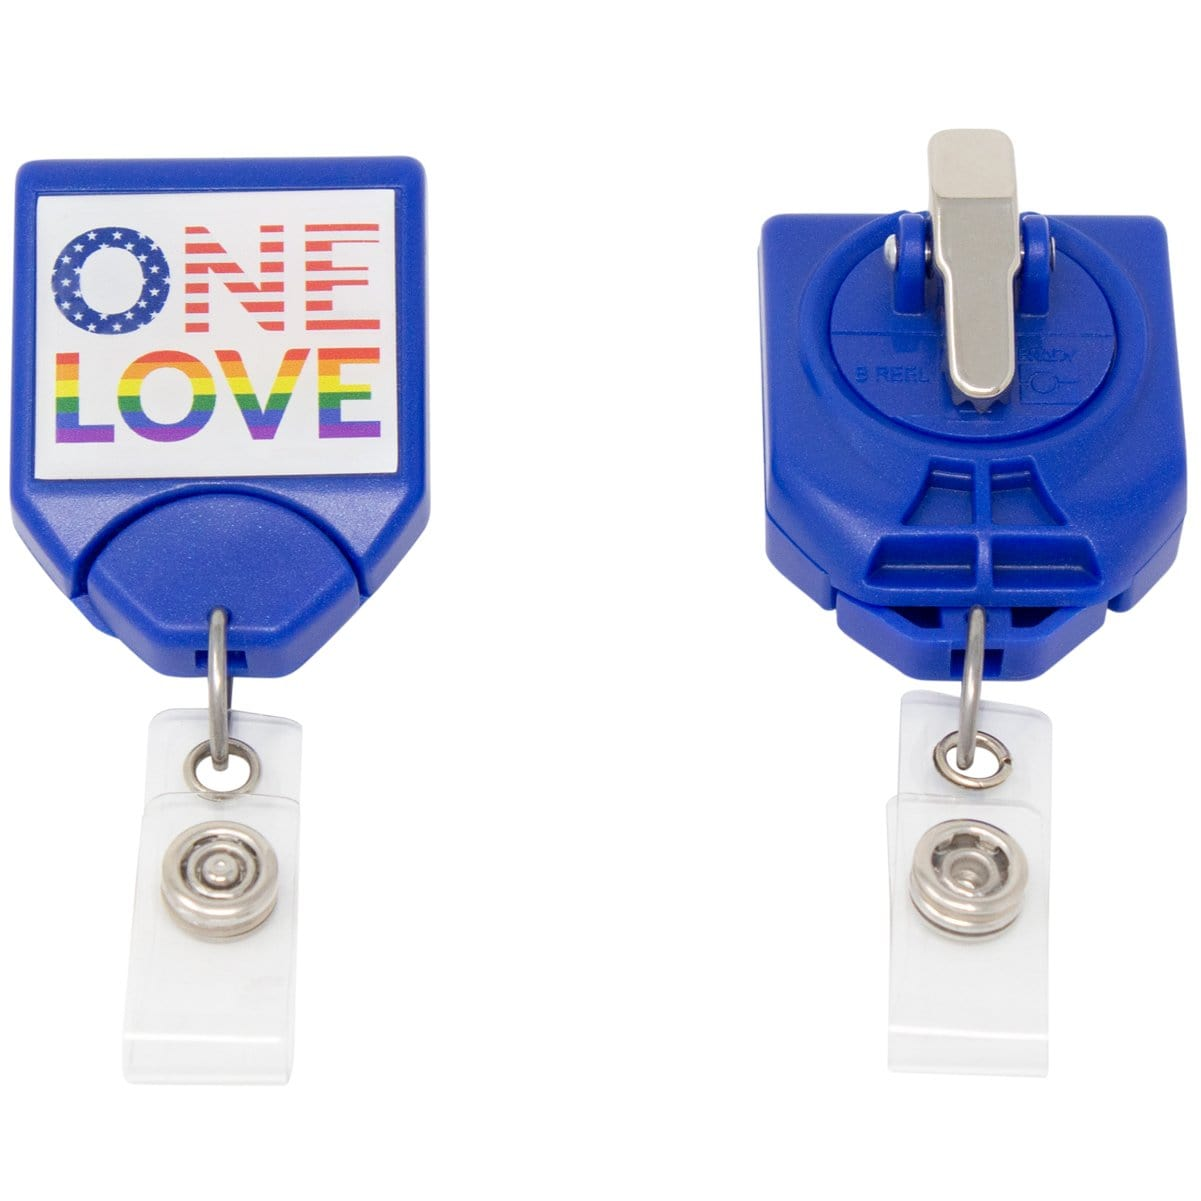 ONE LOVE Patriotic B-Reel with Swivel Clip (P/N 2120-7654)